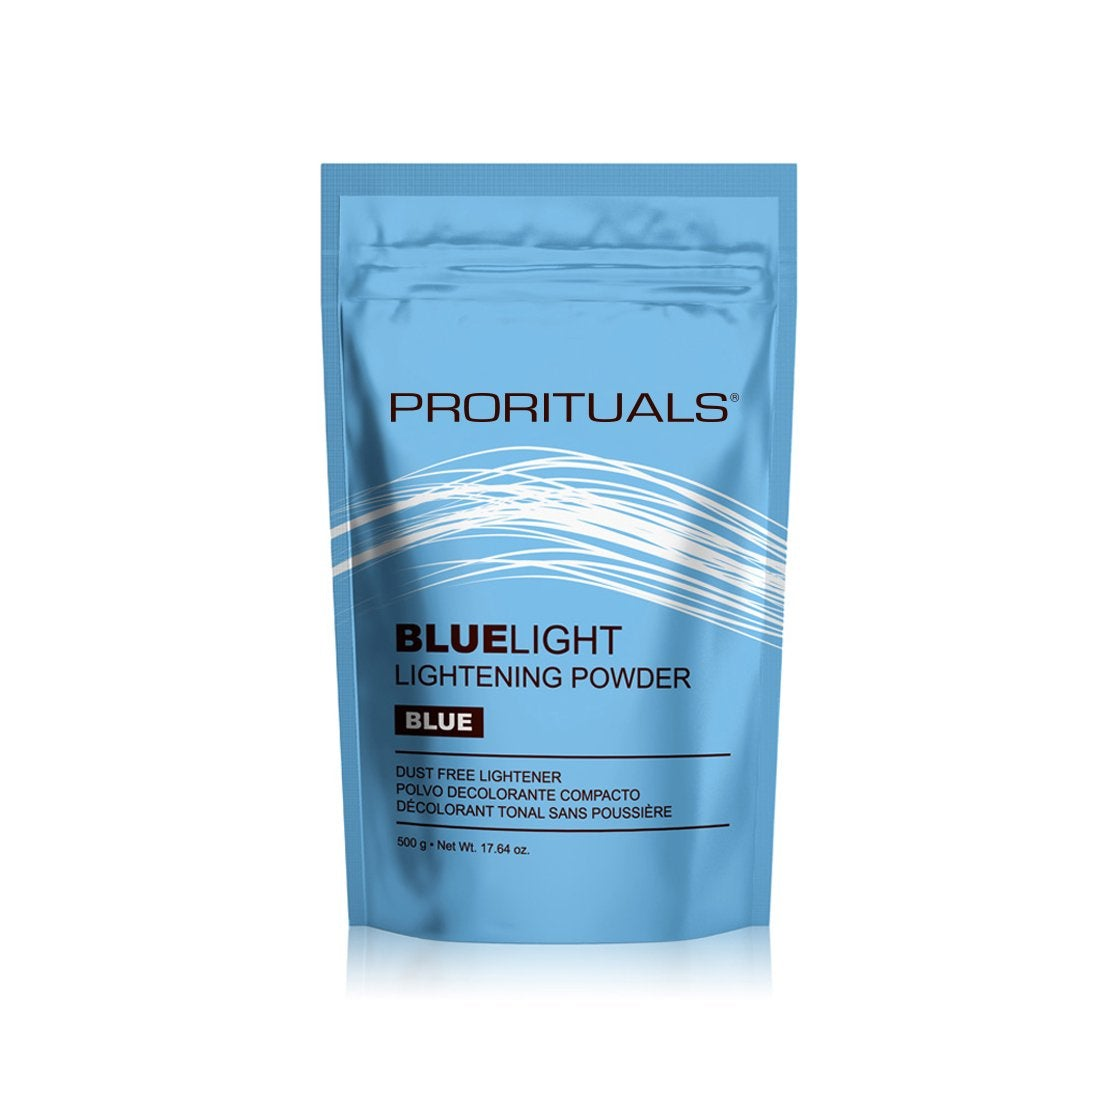 ProRituals Bluelight Lightening Powder 17.64 oz (500 grams)